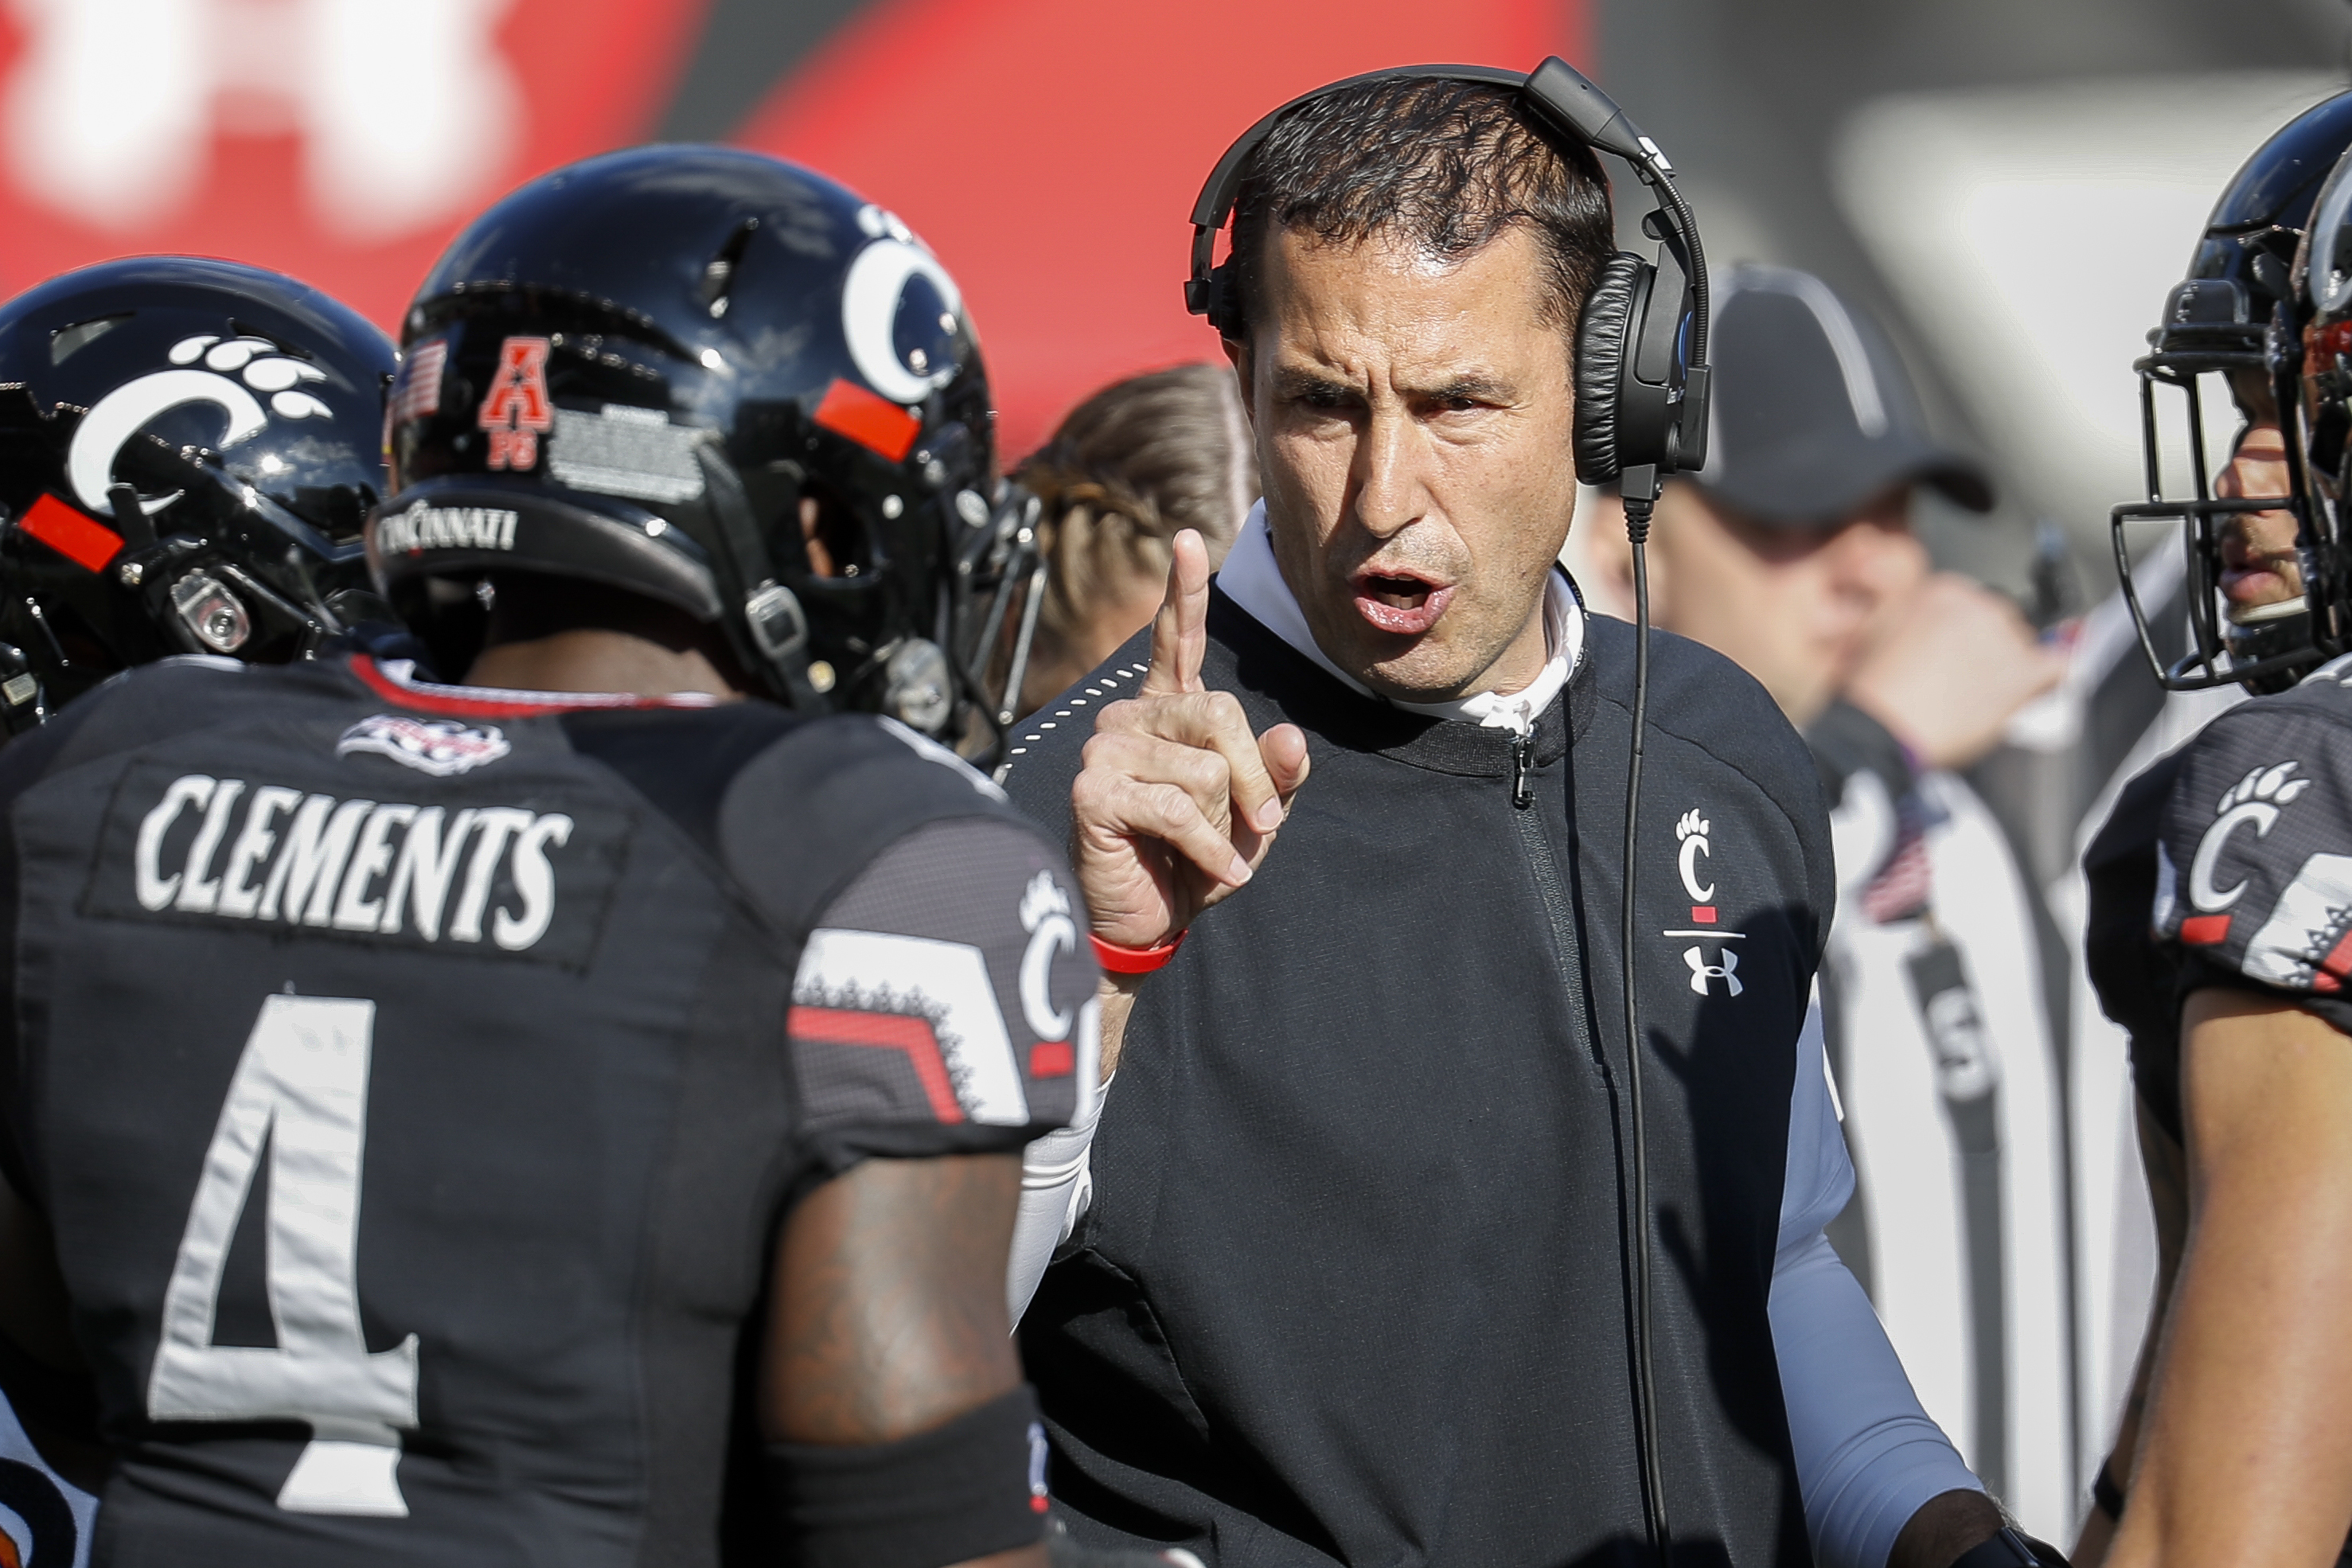 Experienced Bearcats try to build on breakout season